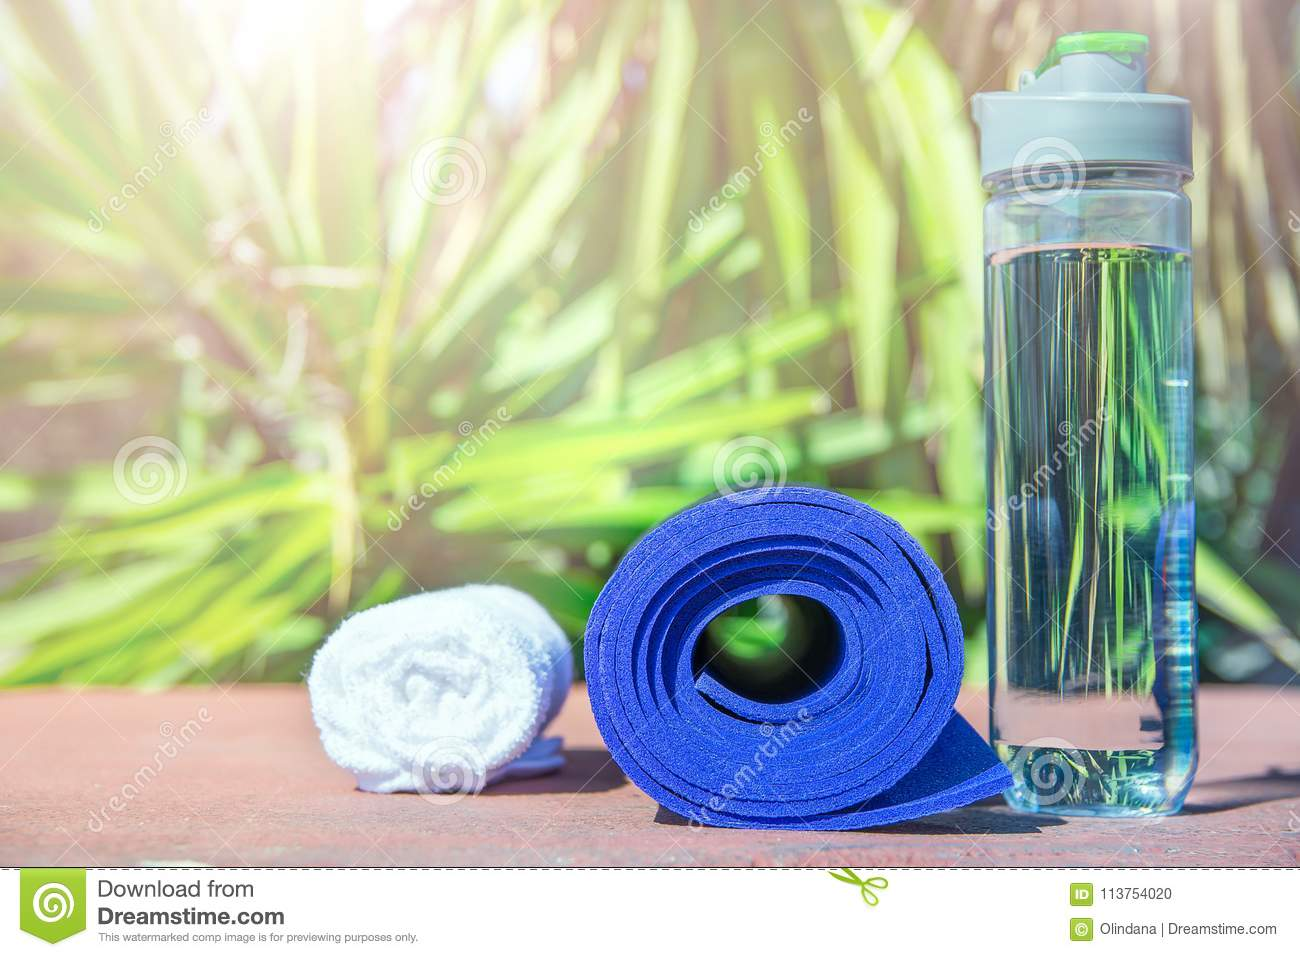 c45a73e5c30 Blue Rolled Yoga Mat Bottle With Water White Towel On Greenery Palm ...